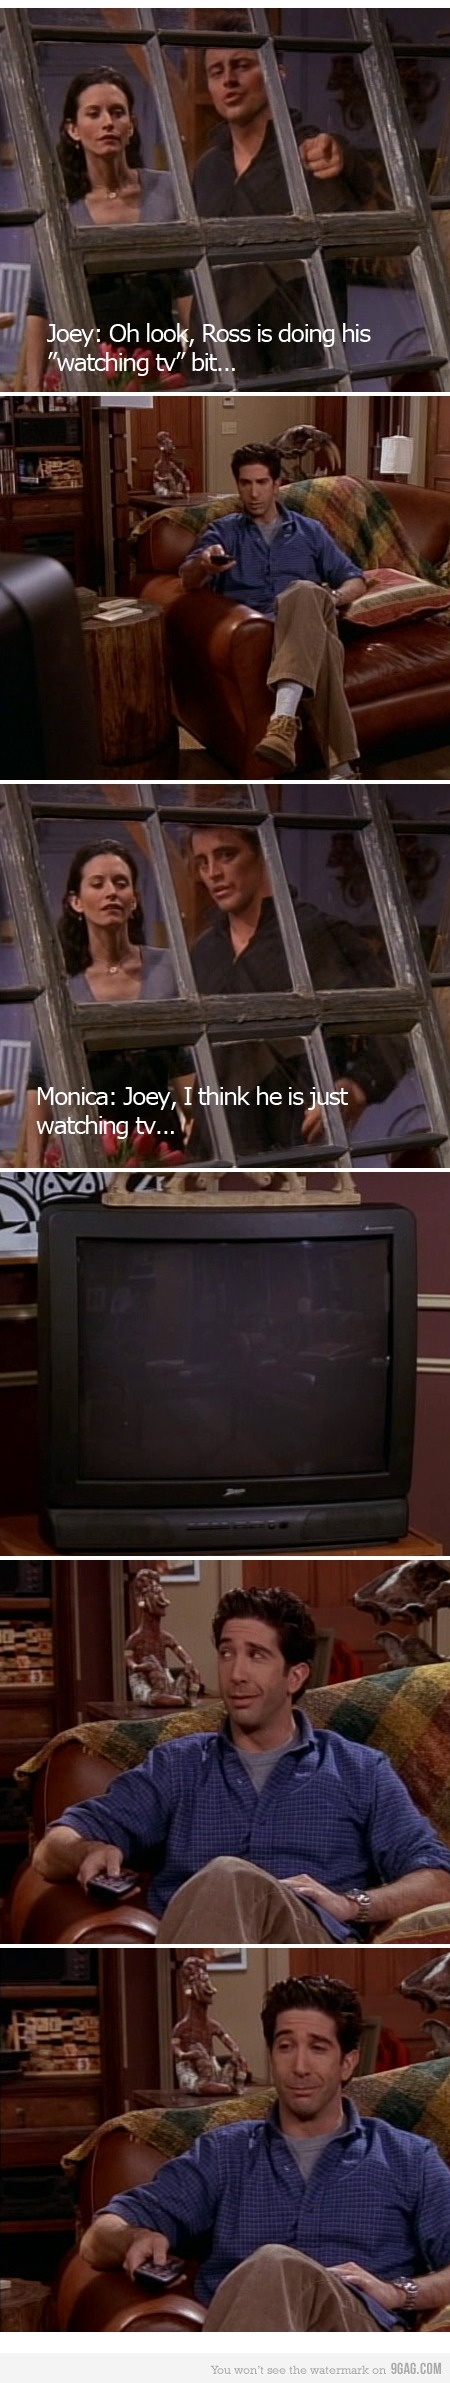 "Ross doing his ""watching tv"" bit - this was always really hilarious to me as a child.  Also realized that some remain pathetic even after adulthood."